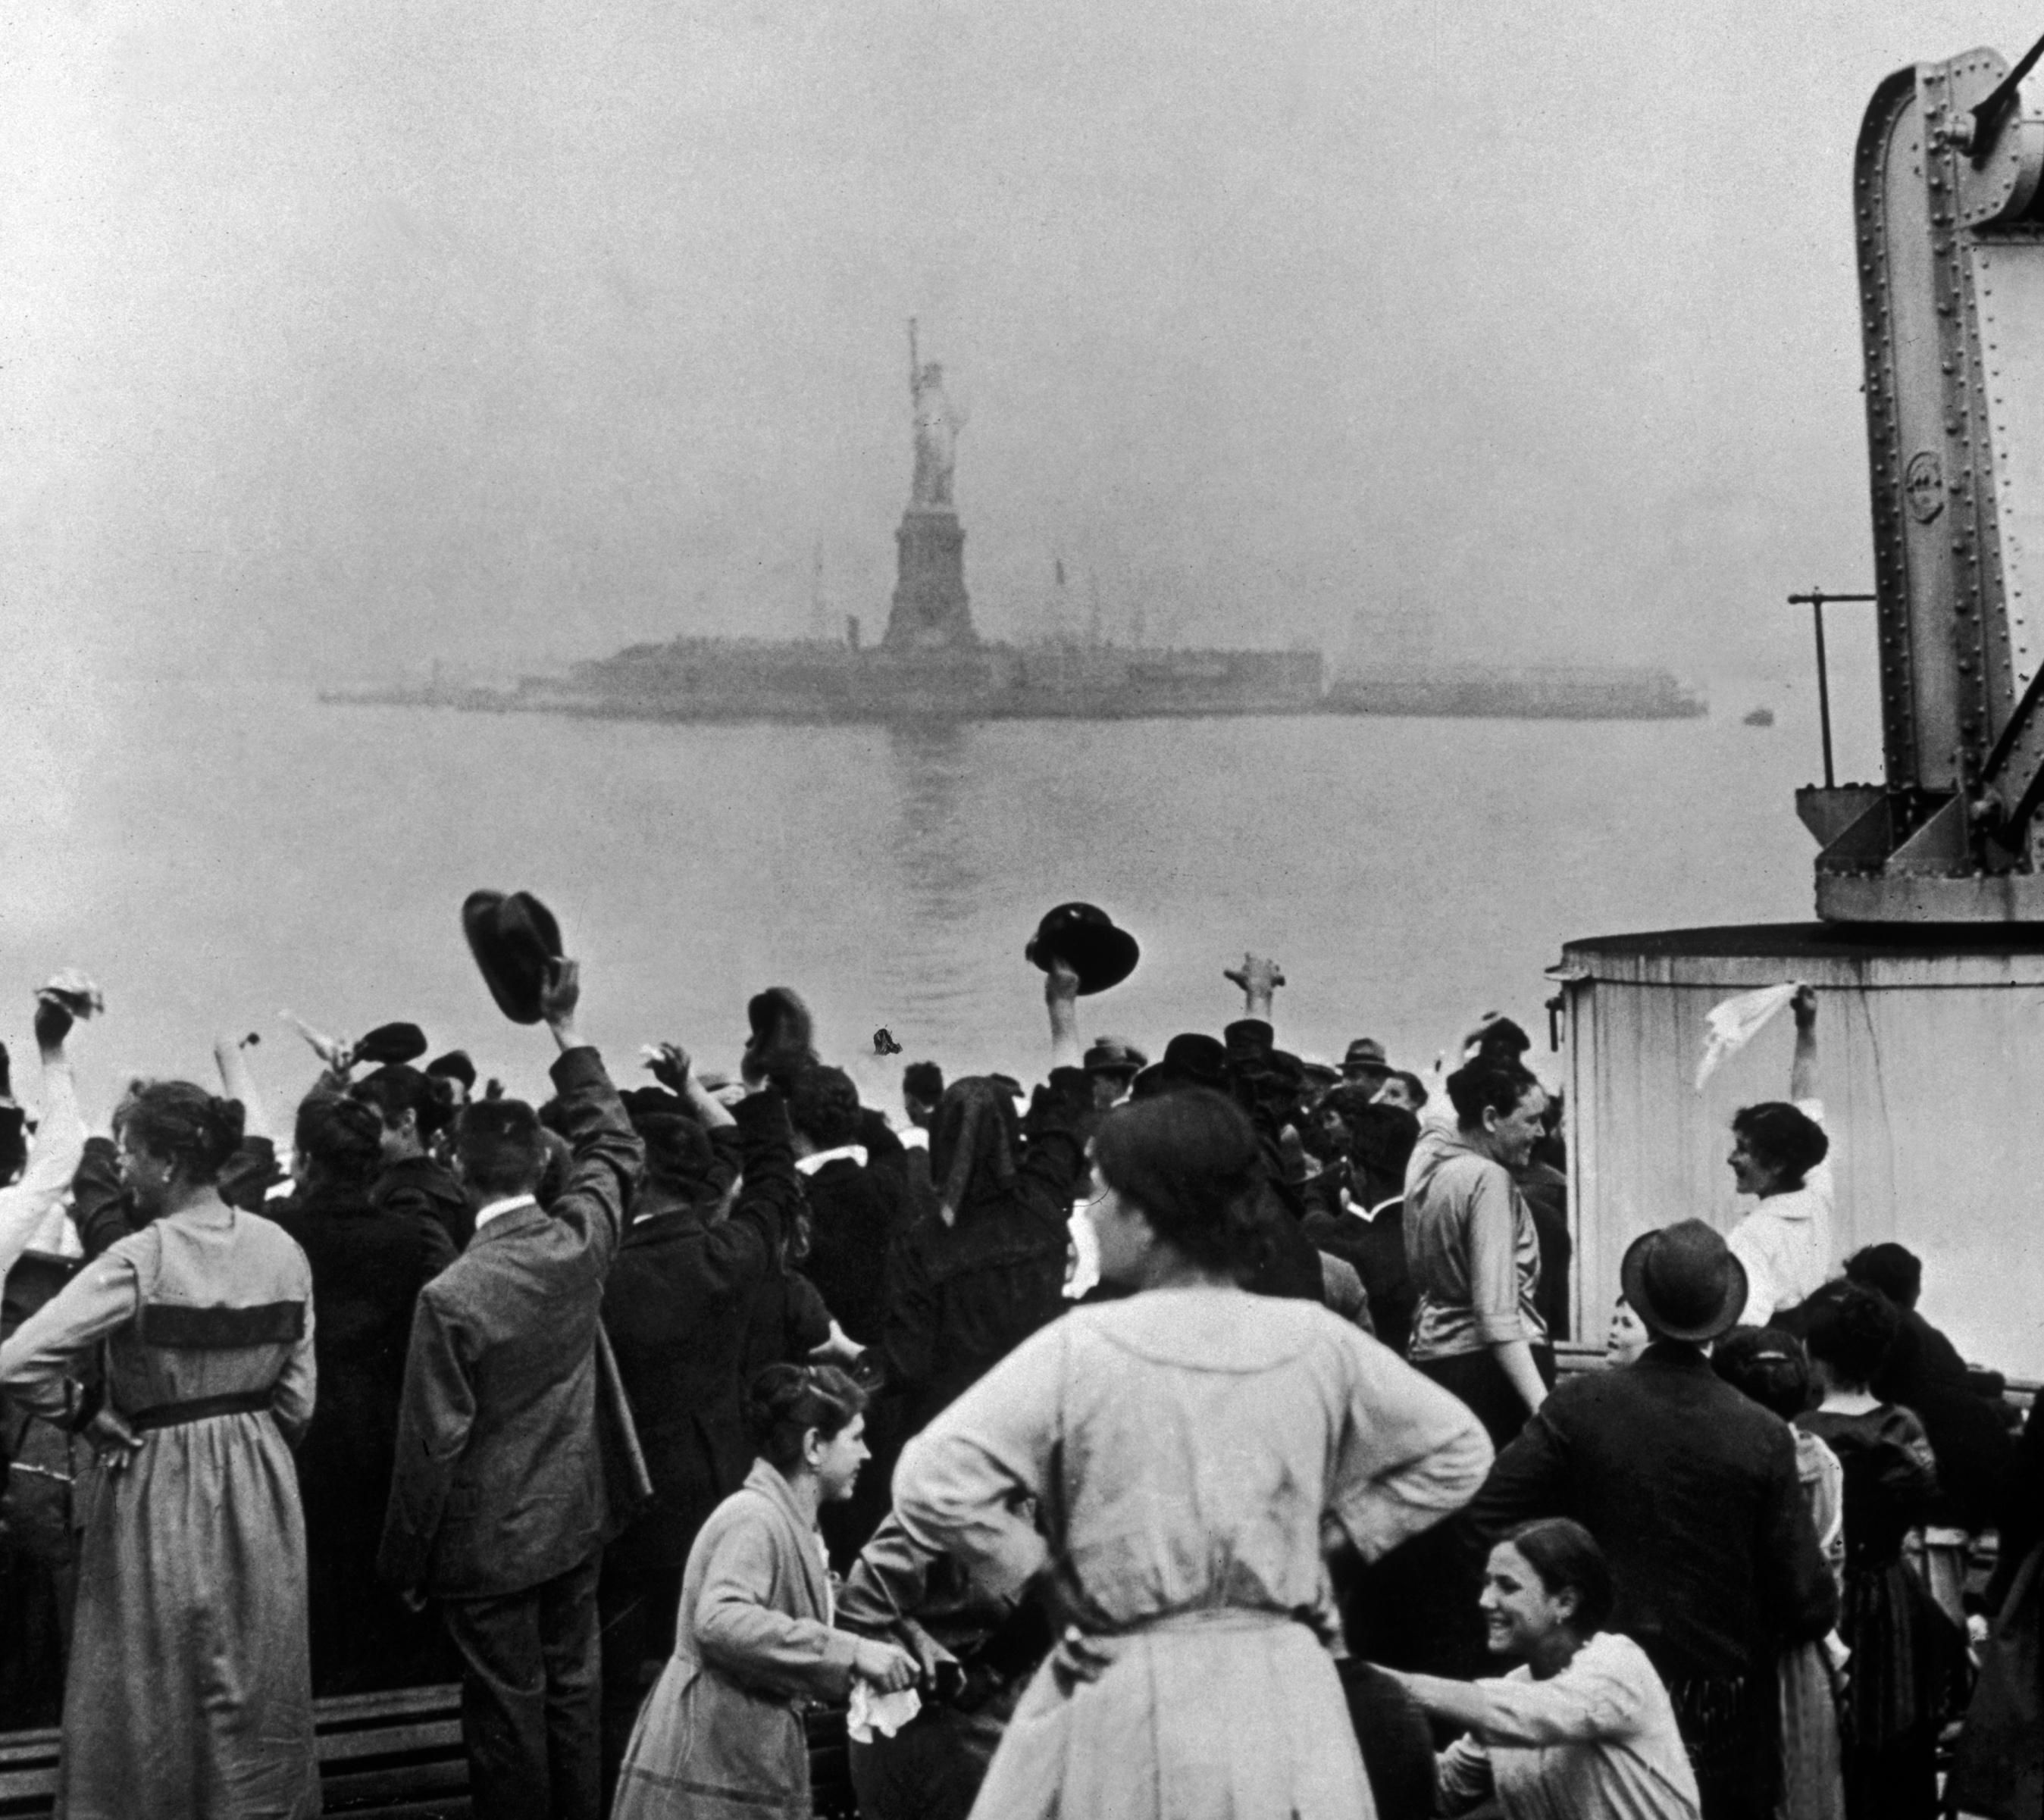 Immigrants Celebrate Seeing The Statue Of Liberty As Their